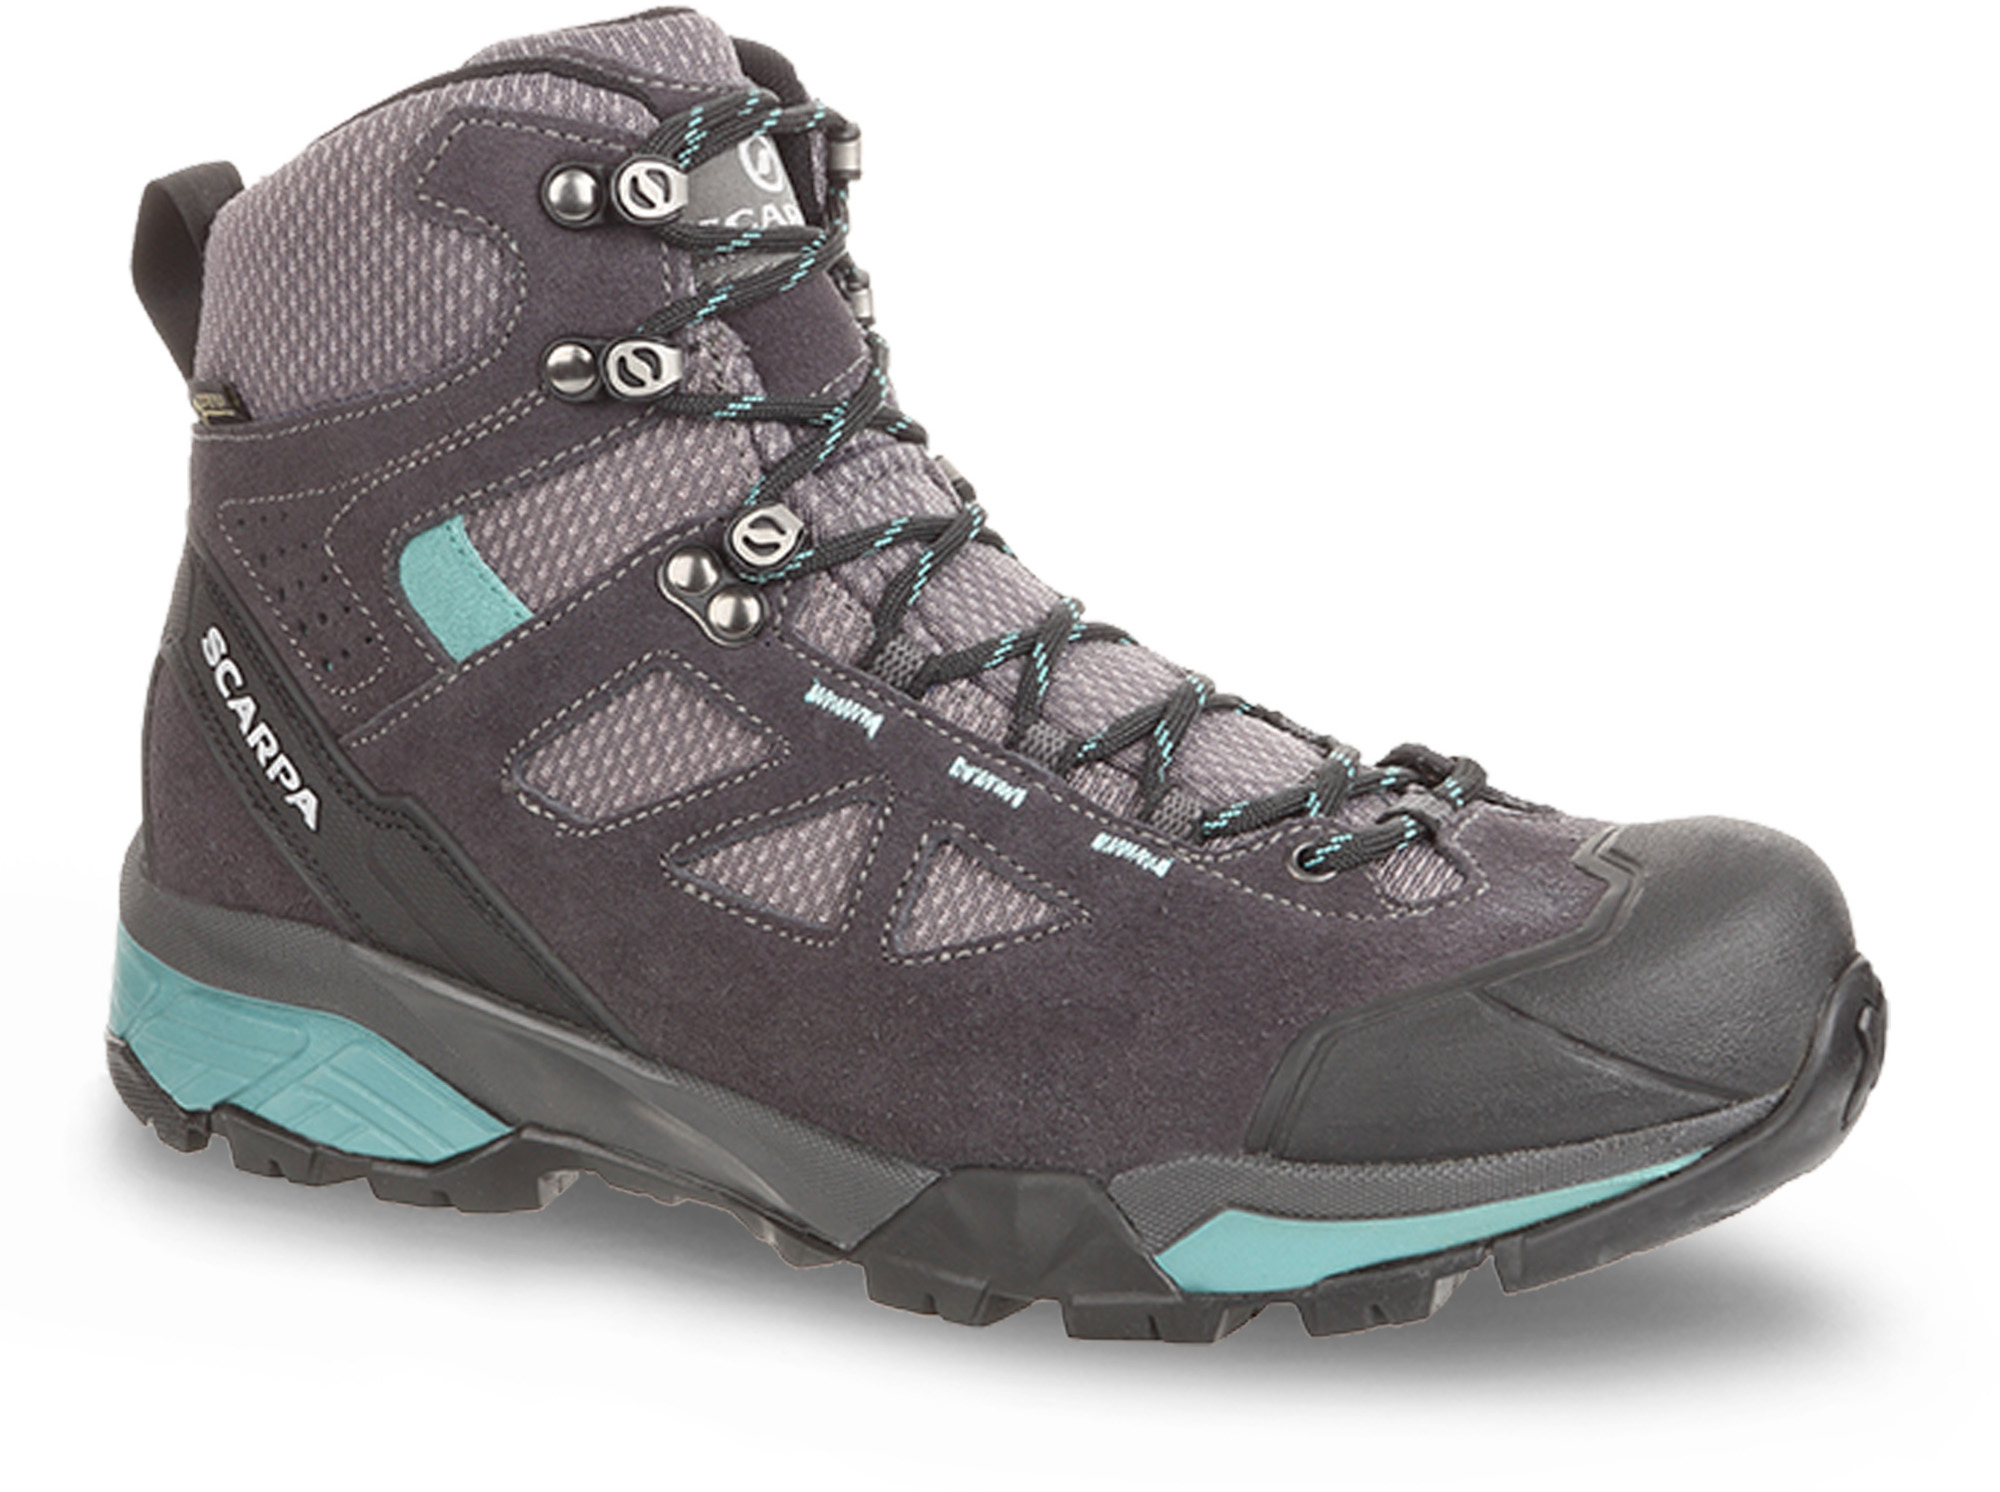 5668d8022171 Women s Hiking boots